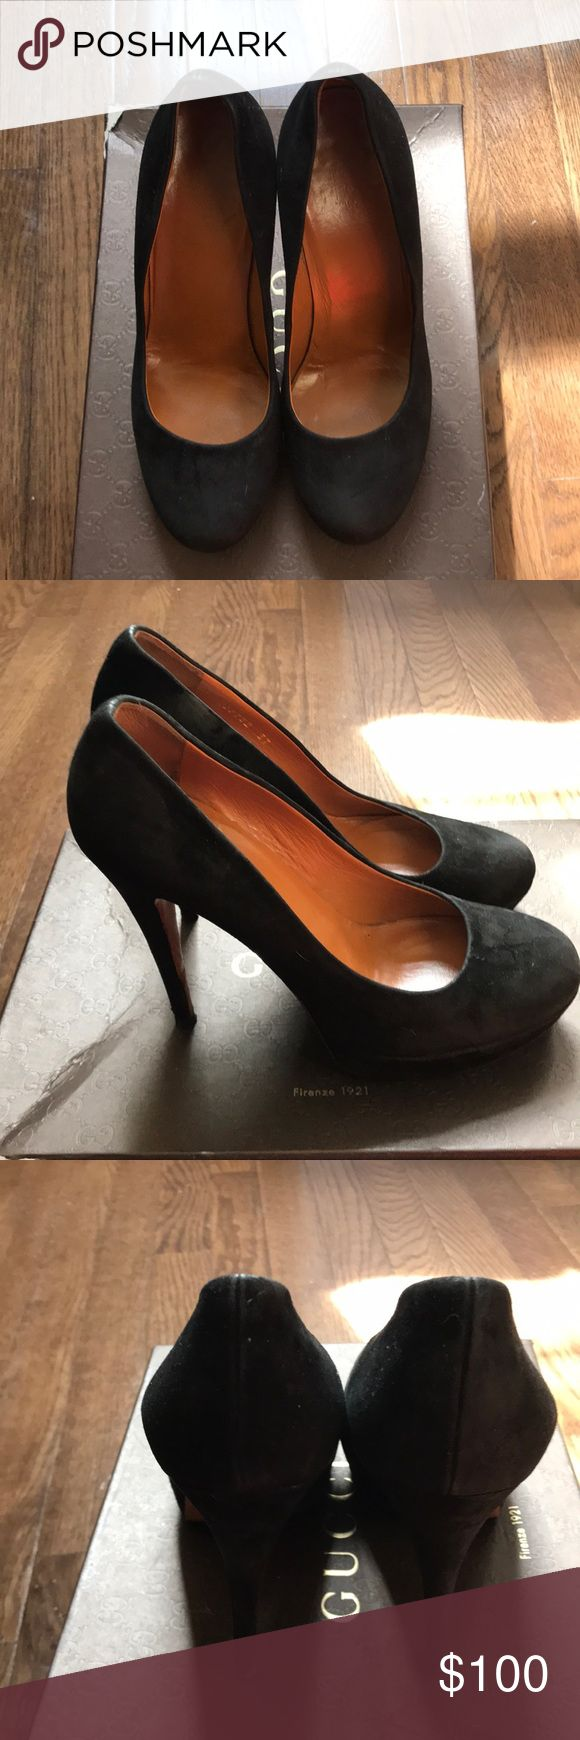 Black suede Gucci Pumps. Used but in great condition. Optional price $530 Gucci Shoes Platforms